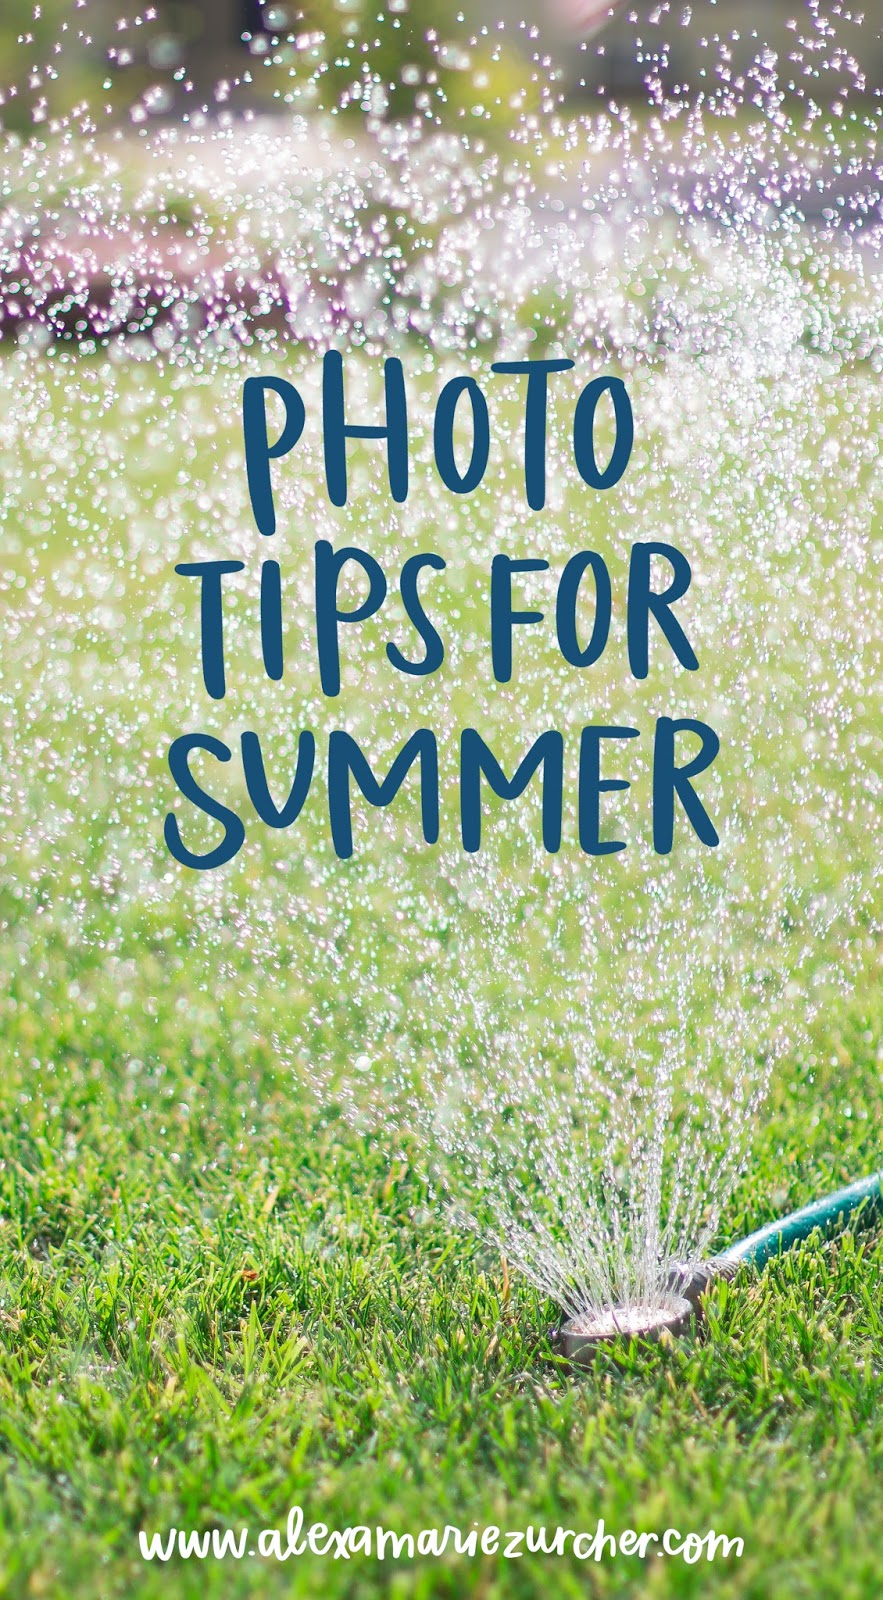 Summer Photos Tips - Sprinklers, Beach, and Pool!